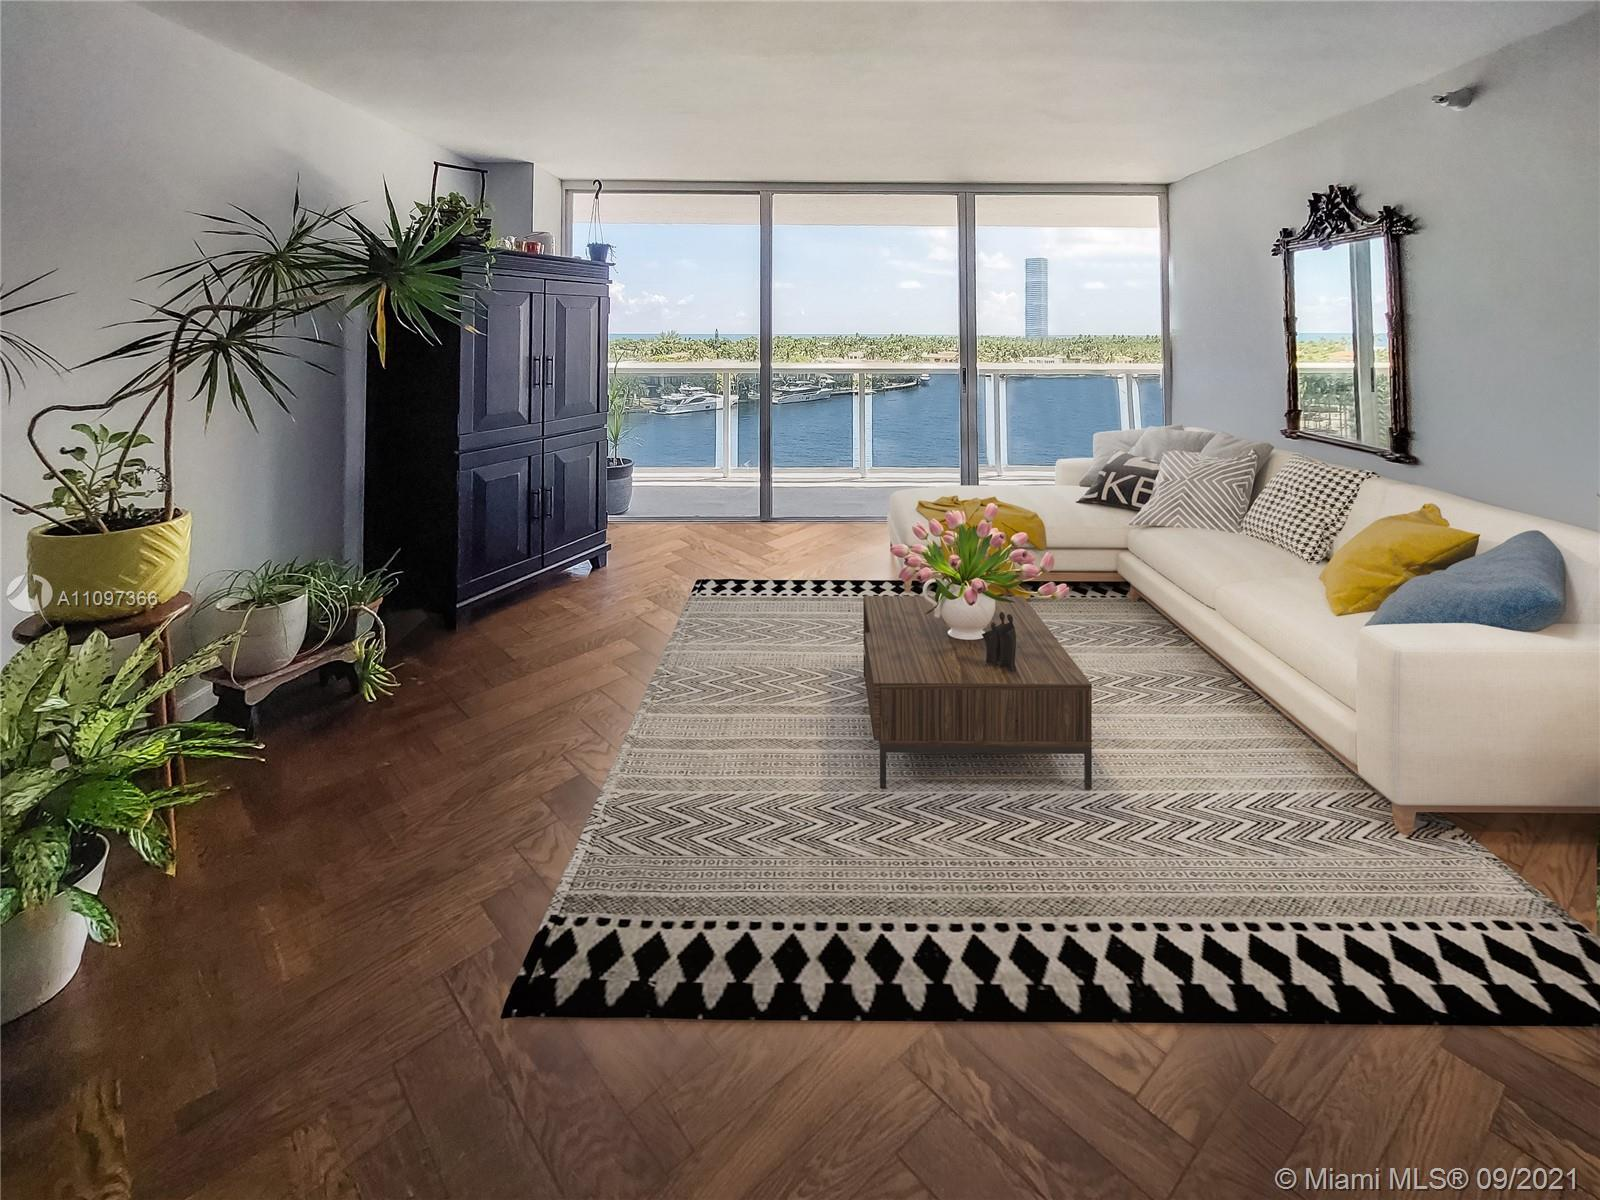 SPECTACULAR unobstructed wide open views of the intracoastal and Atlantic Ocean from huge 50 foot lo